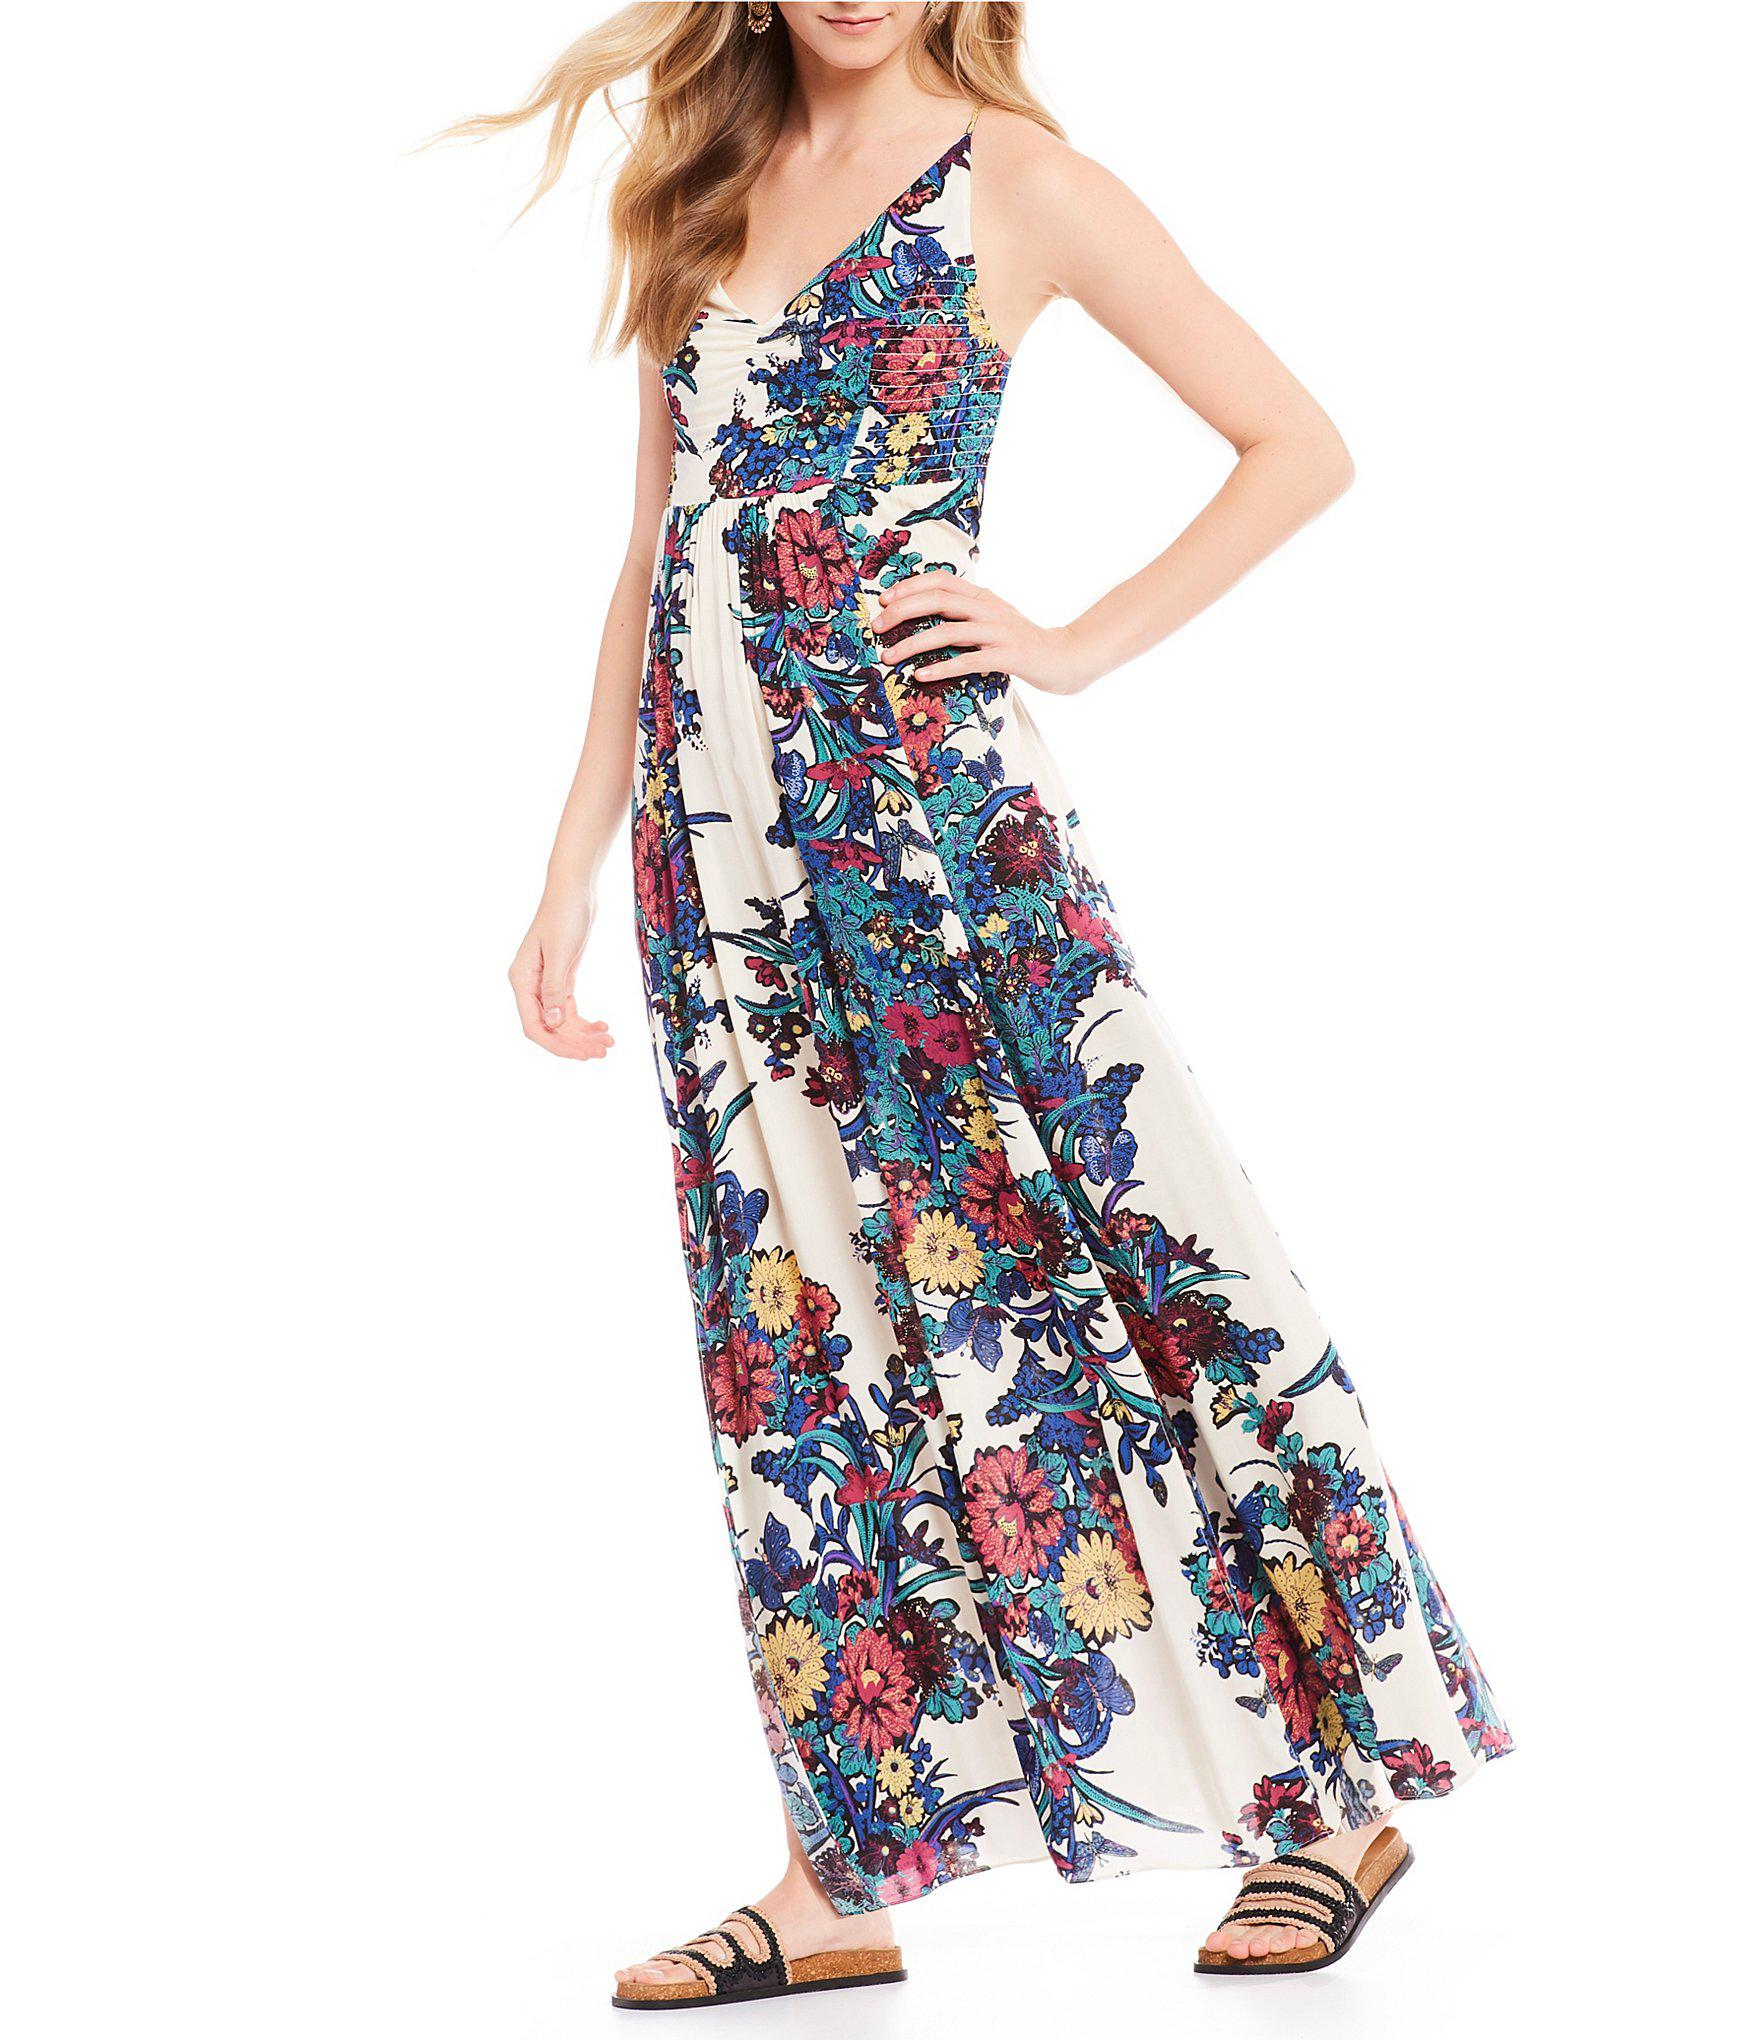 c733be6416f Free People Through The Vine Floral Print Maxi Dress in Blue - Lyst